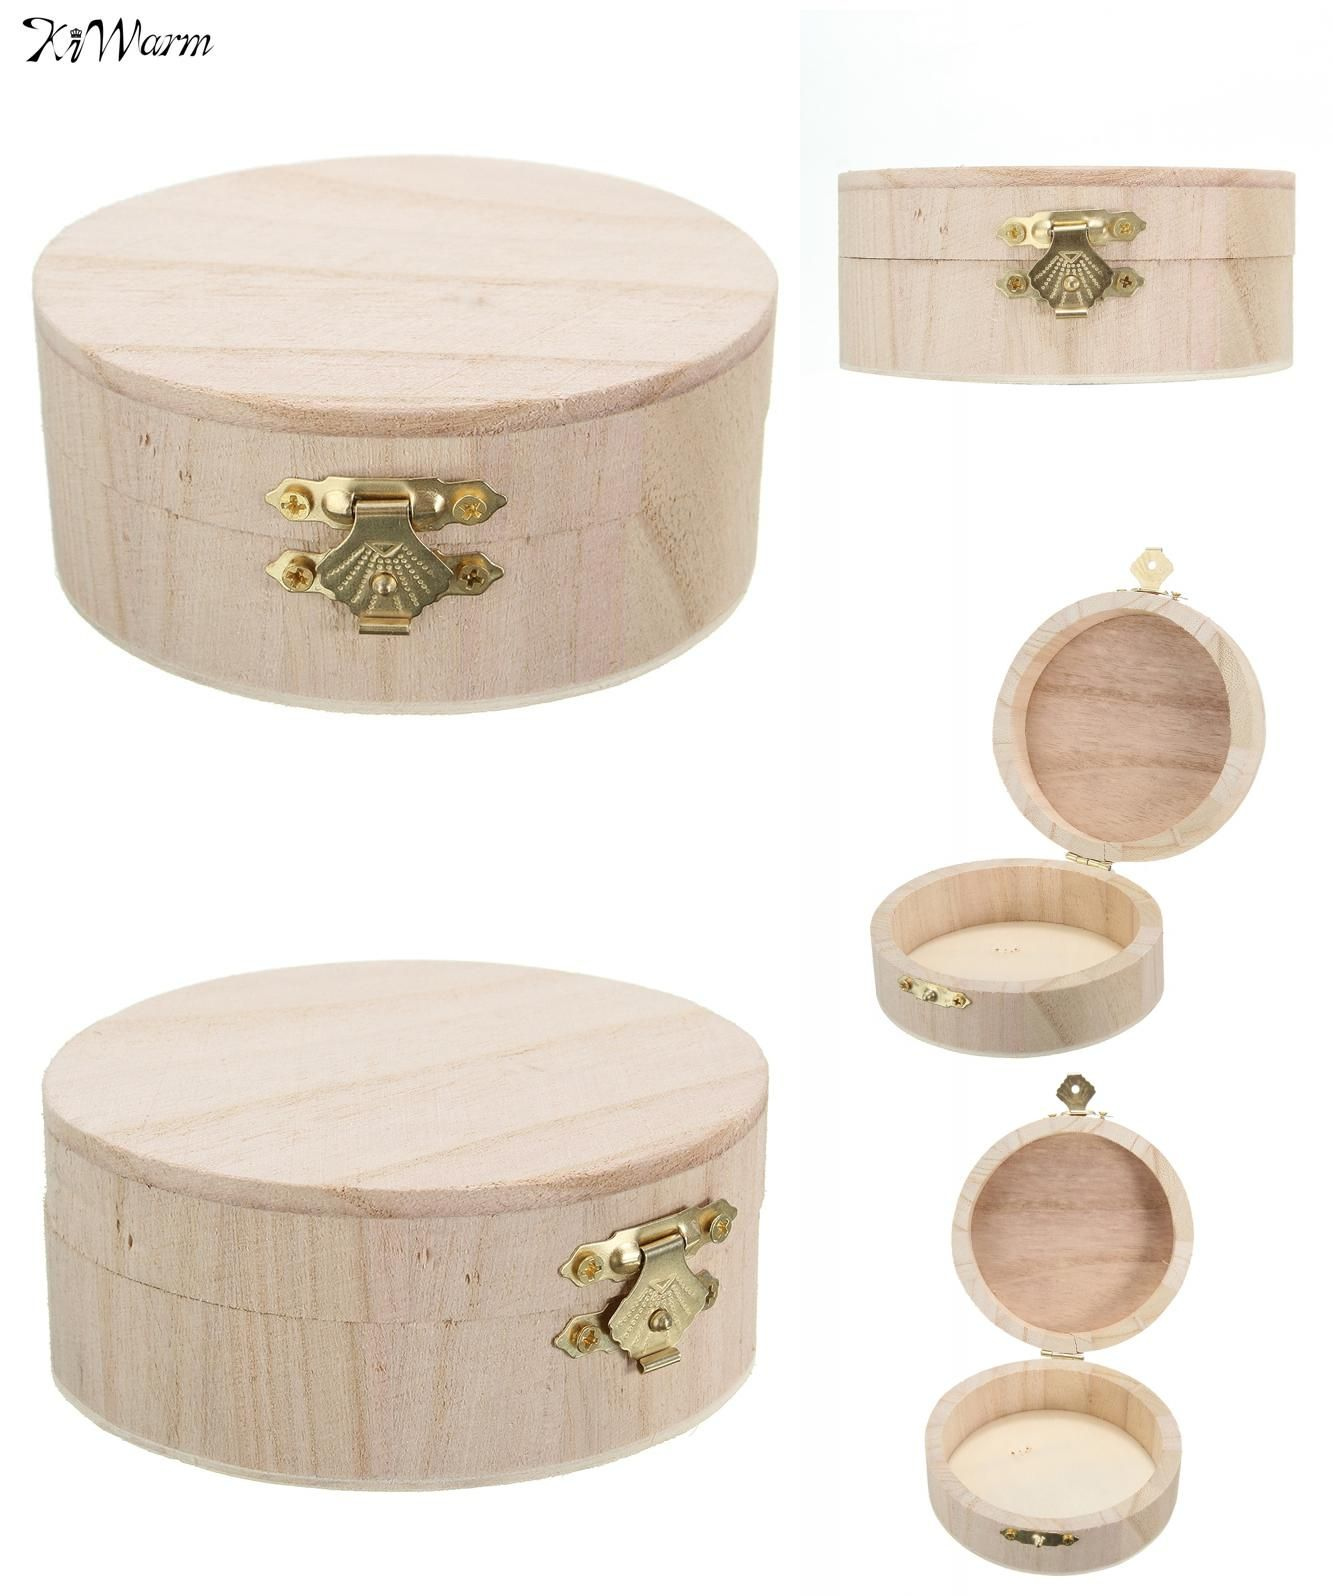 Visit to Buy Kiwarm Portable Storage Boxes Round Wooden Box